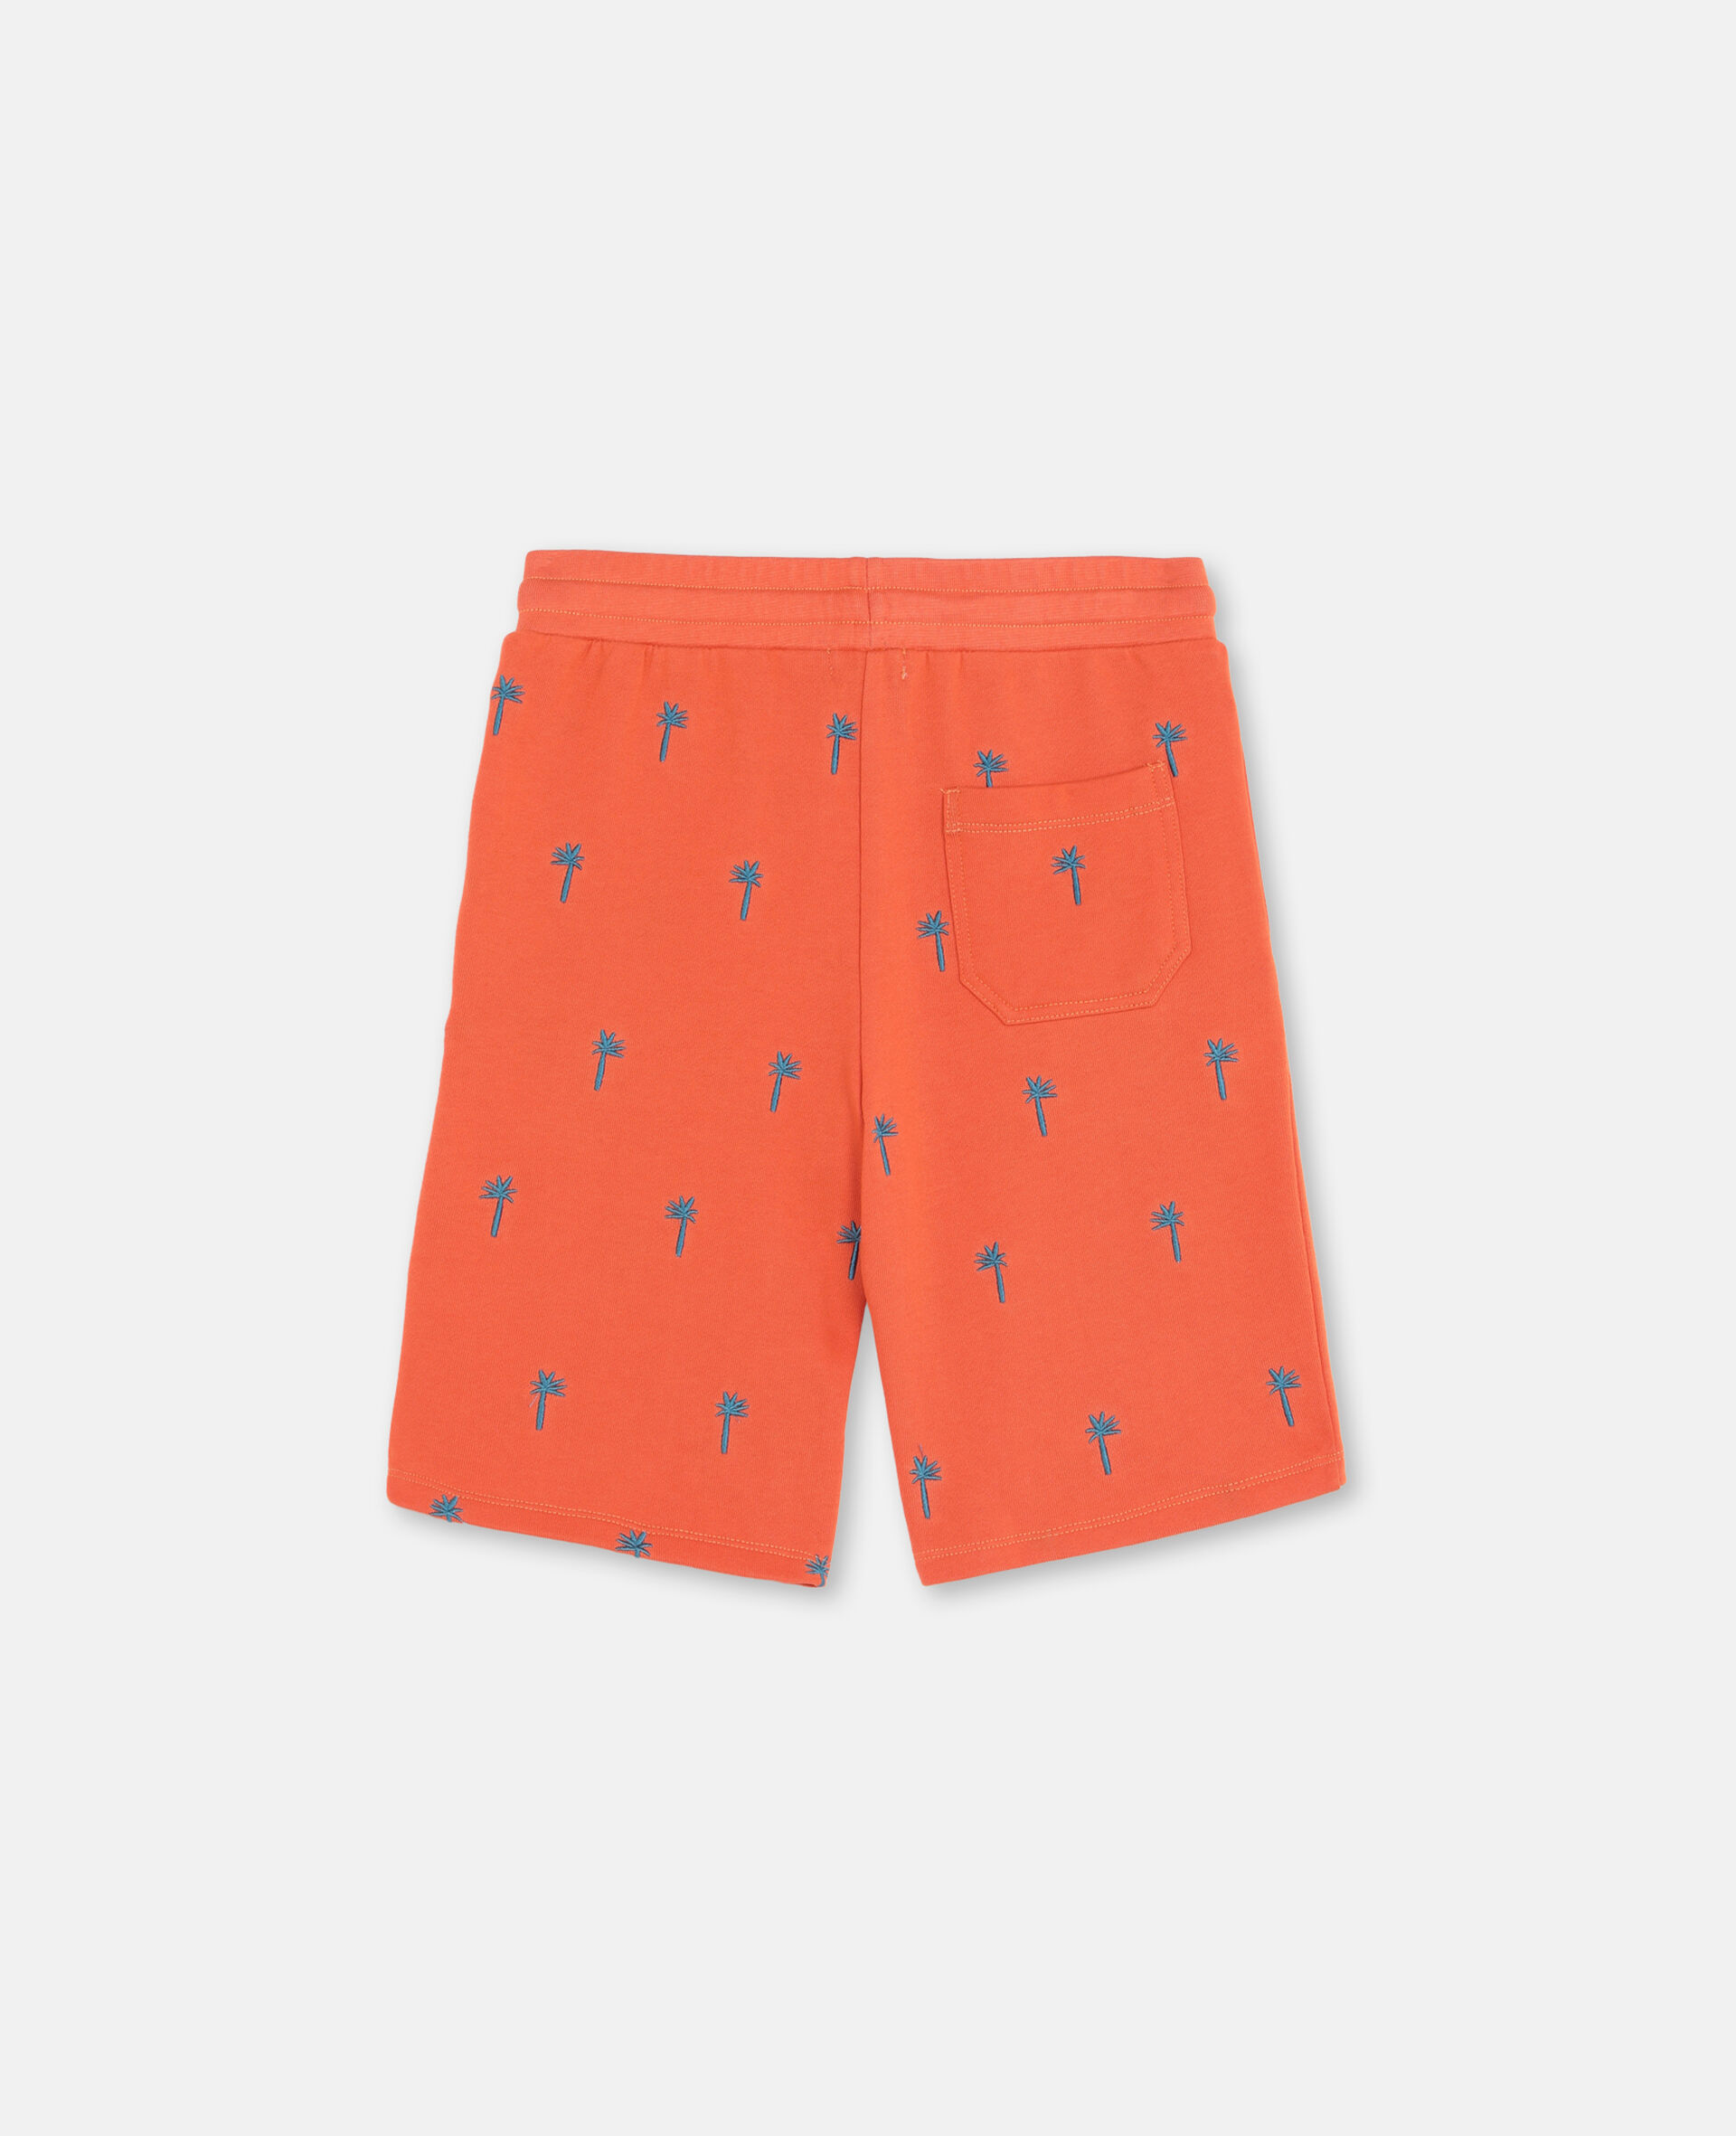 Embroidered Palm Cotton Shorts-Red-large image number 3